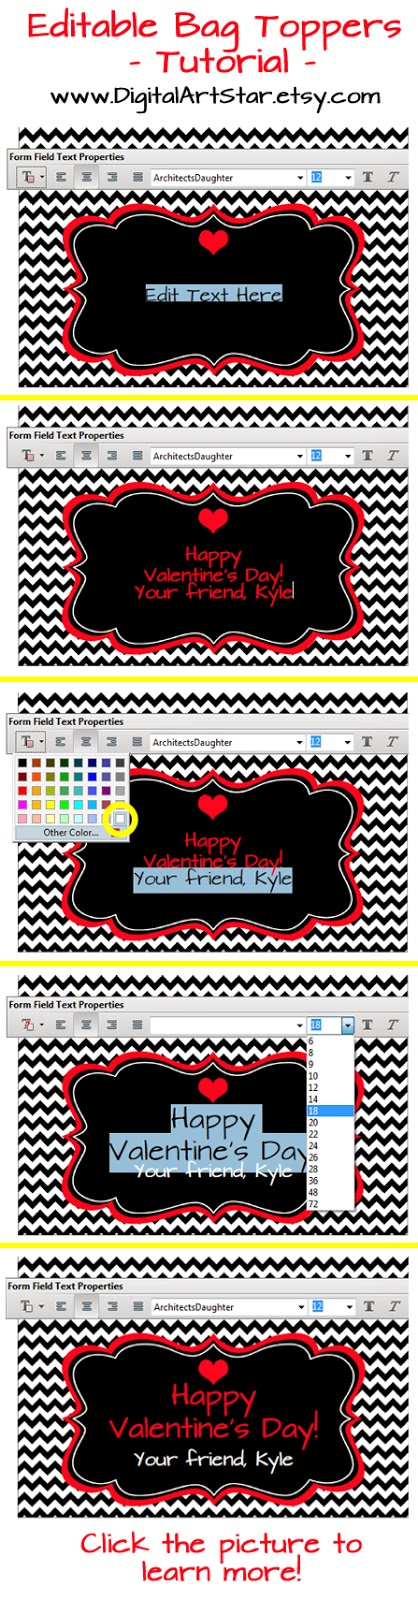 Editable chevron Valentine's Day bag toppers tutorial